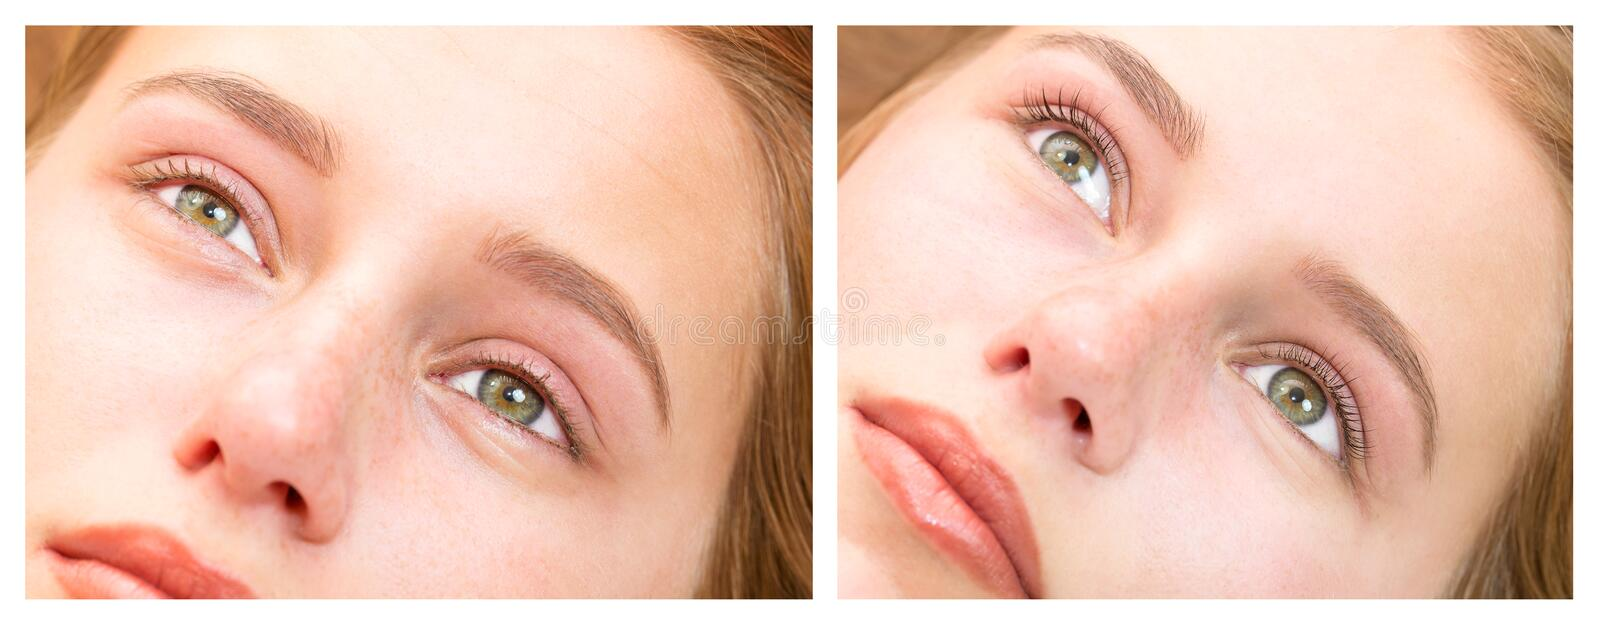 Woman on the procedure for eyelash extensions, royalty free stock images